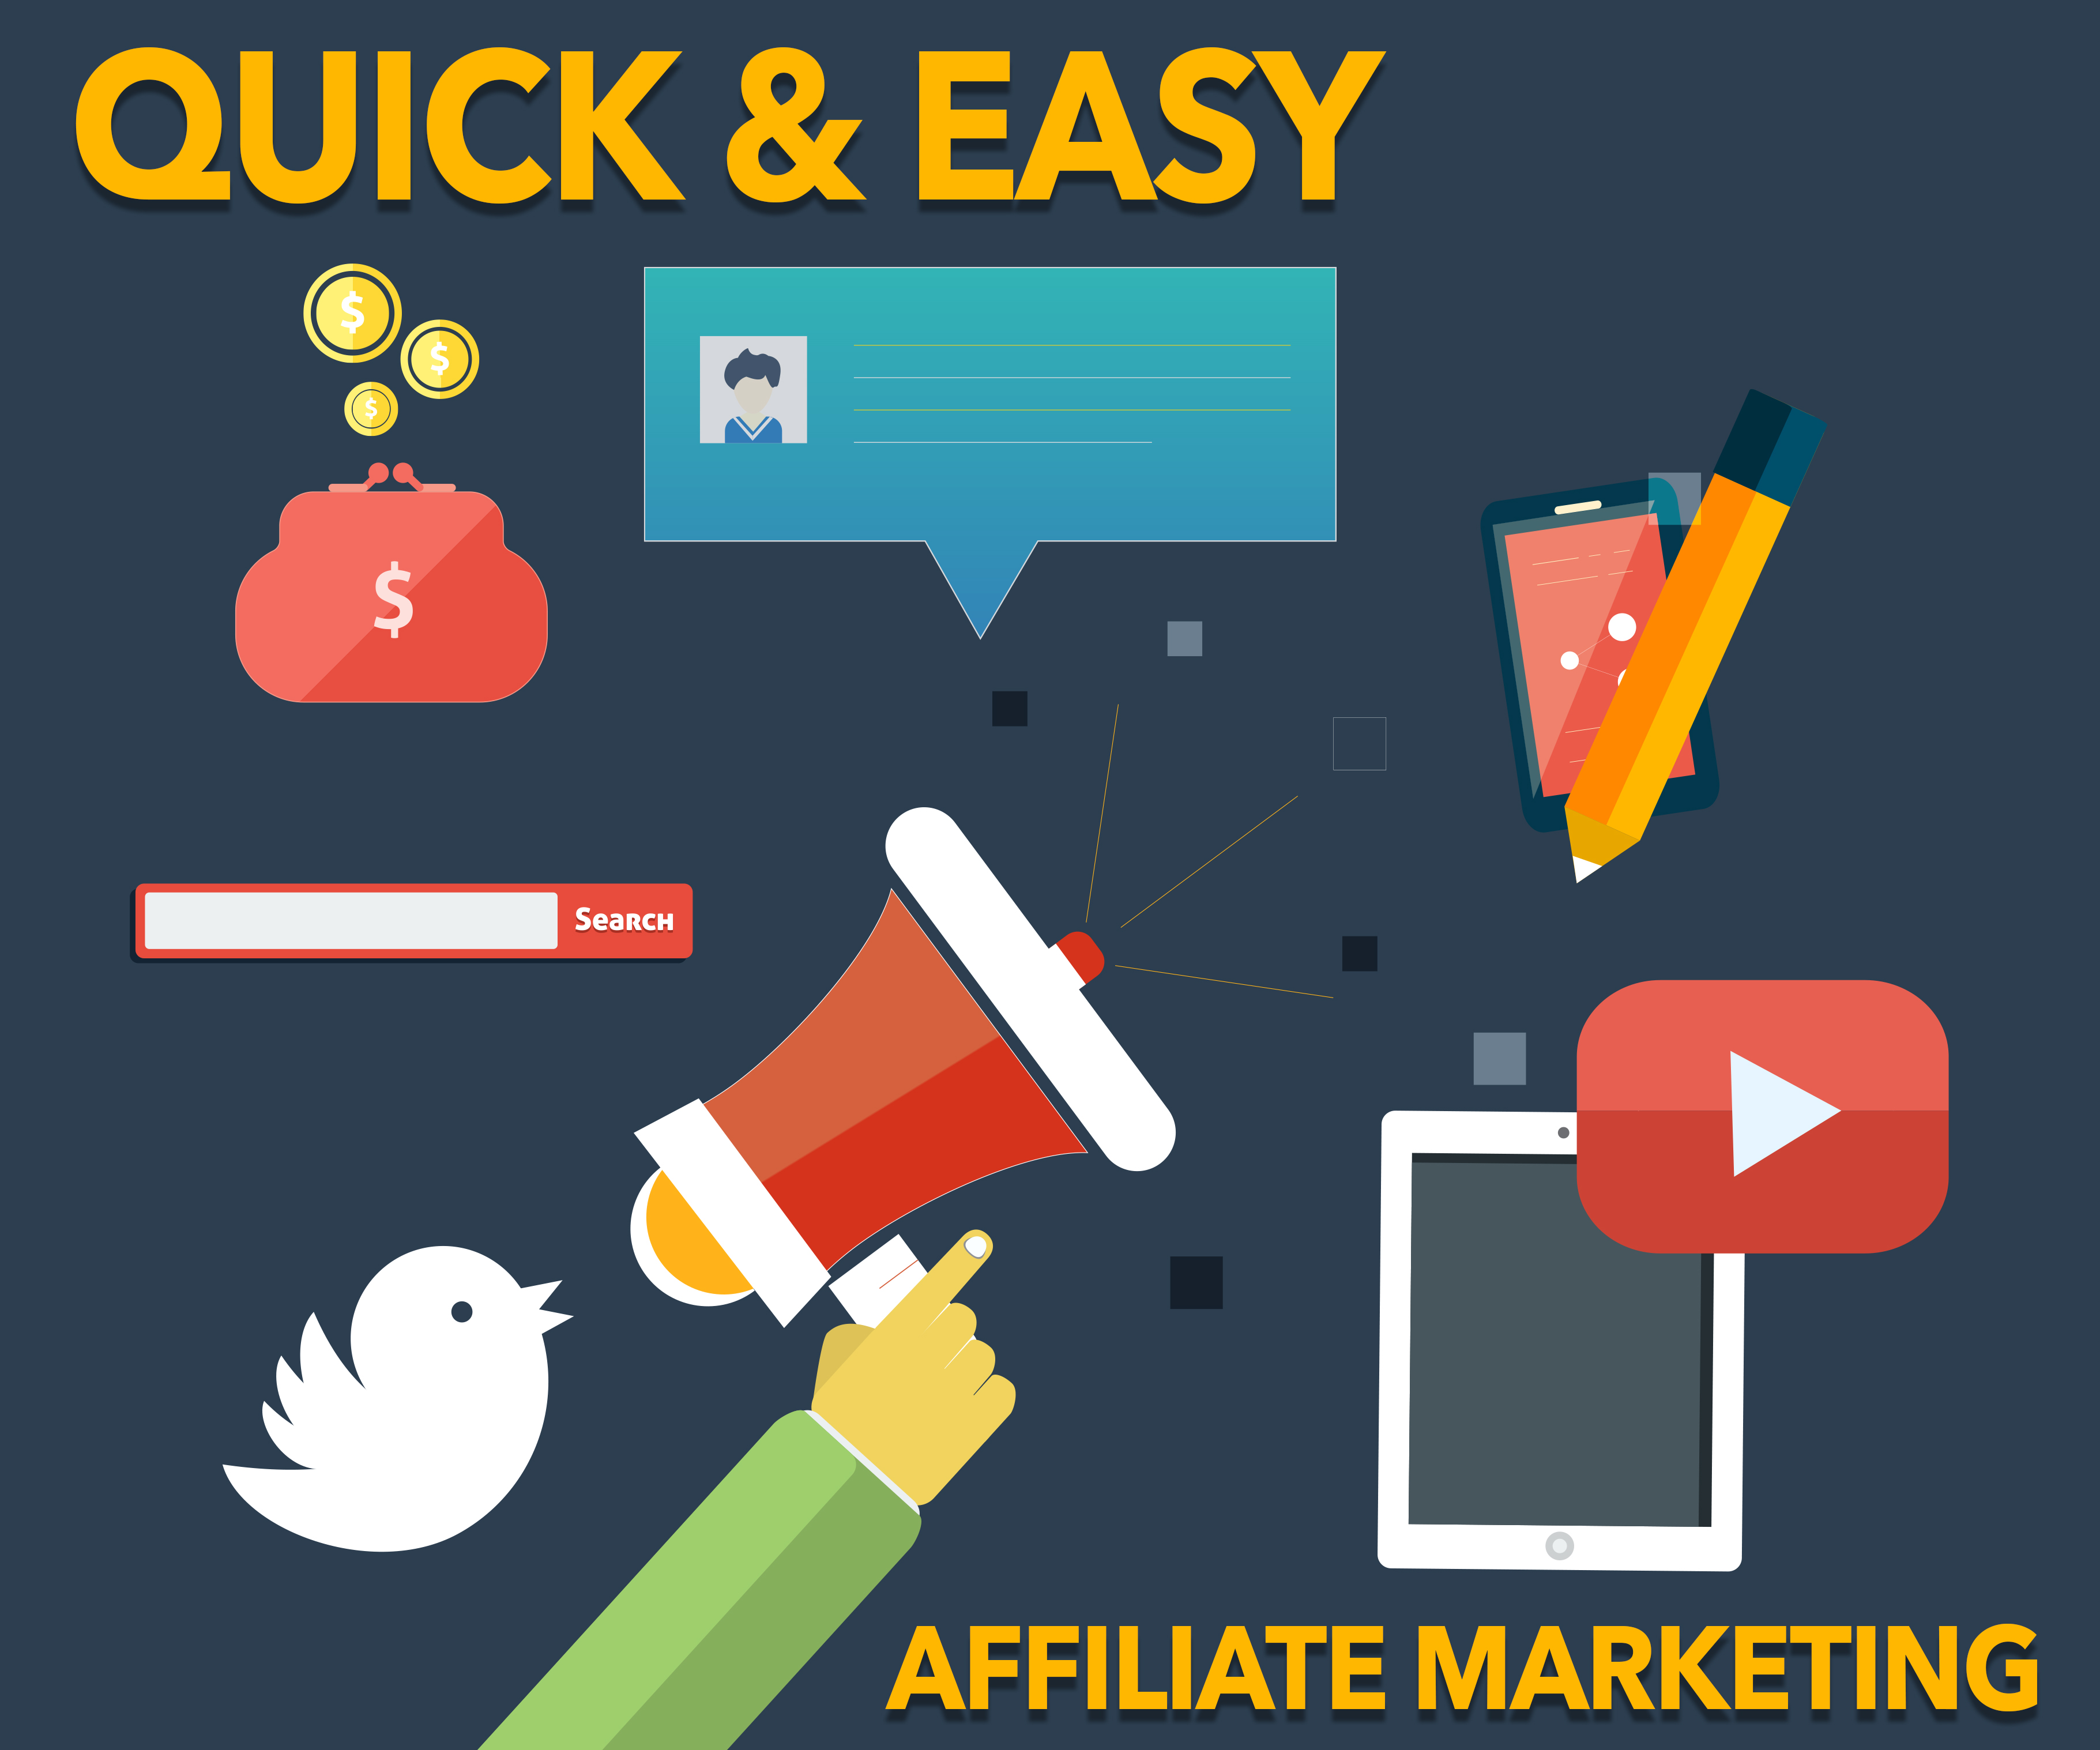 Quick & Easy Affiliate Marketing Presented by Shawn Hansen